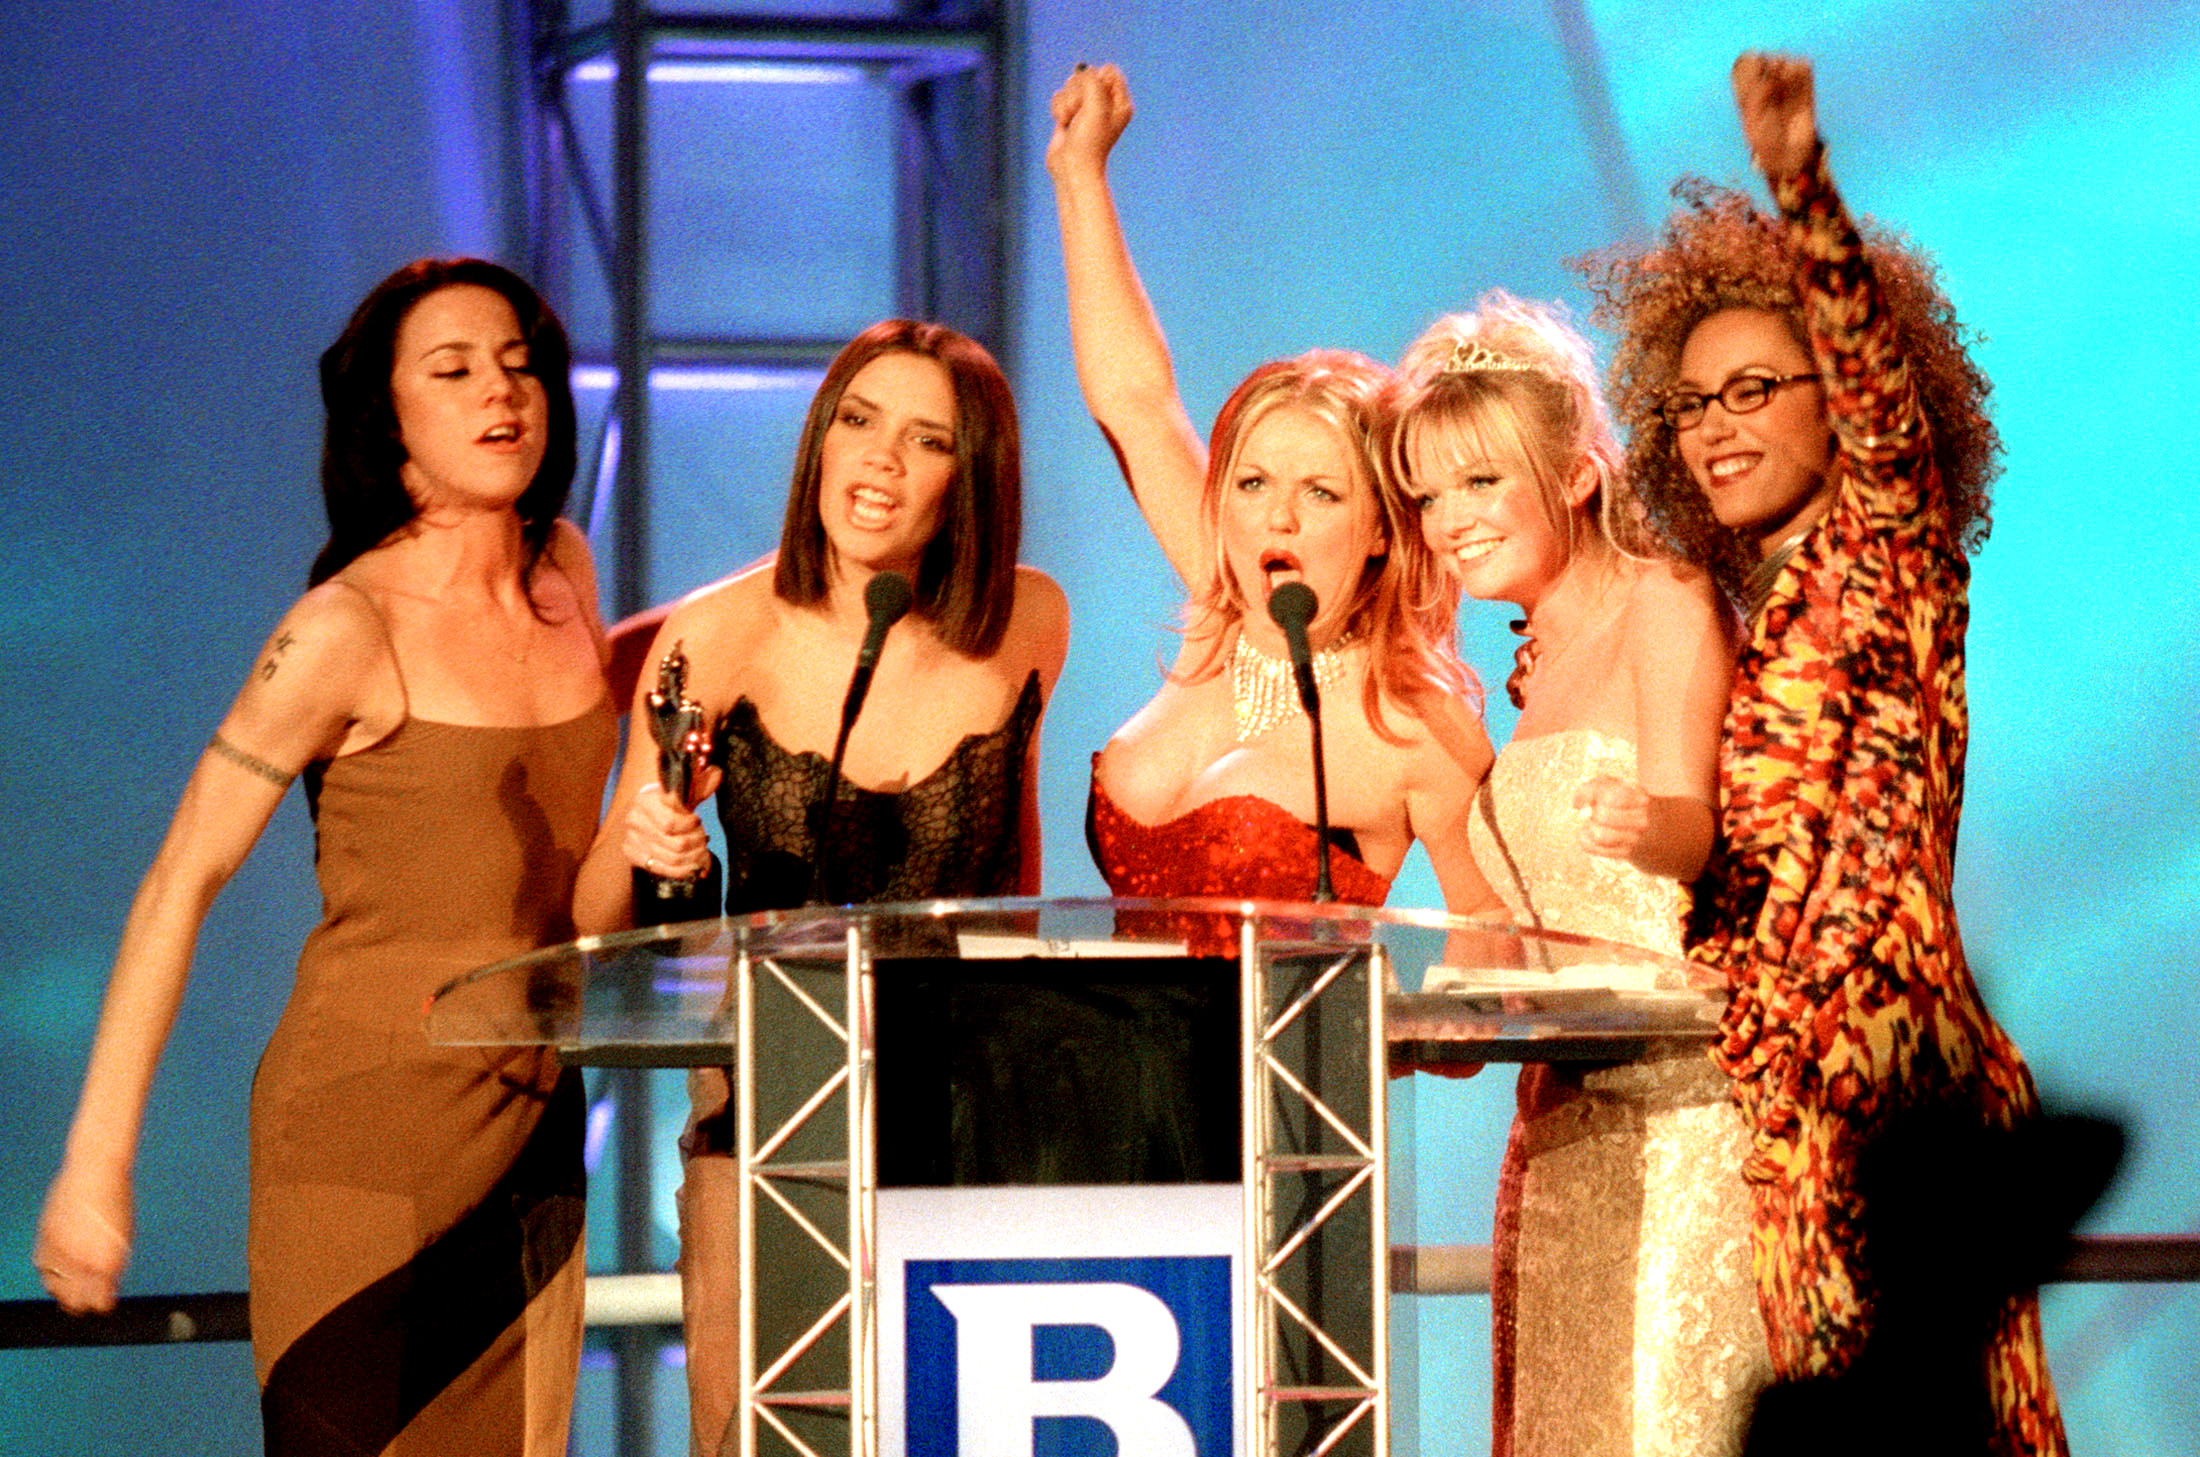 Mel C (pictured with her fellow Spice Girls in 1997) says she was bullied while in the group. (Photo: REUTERS/Kieran Doherty)